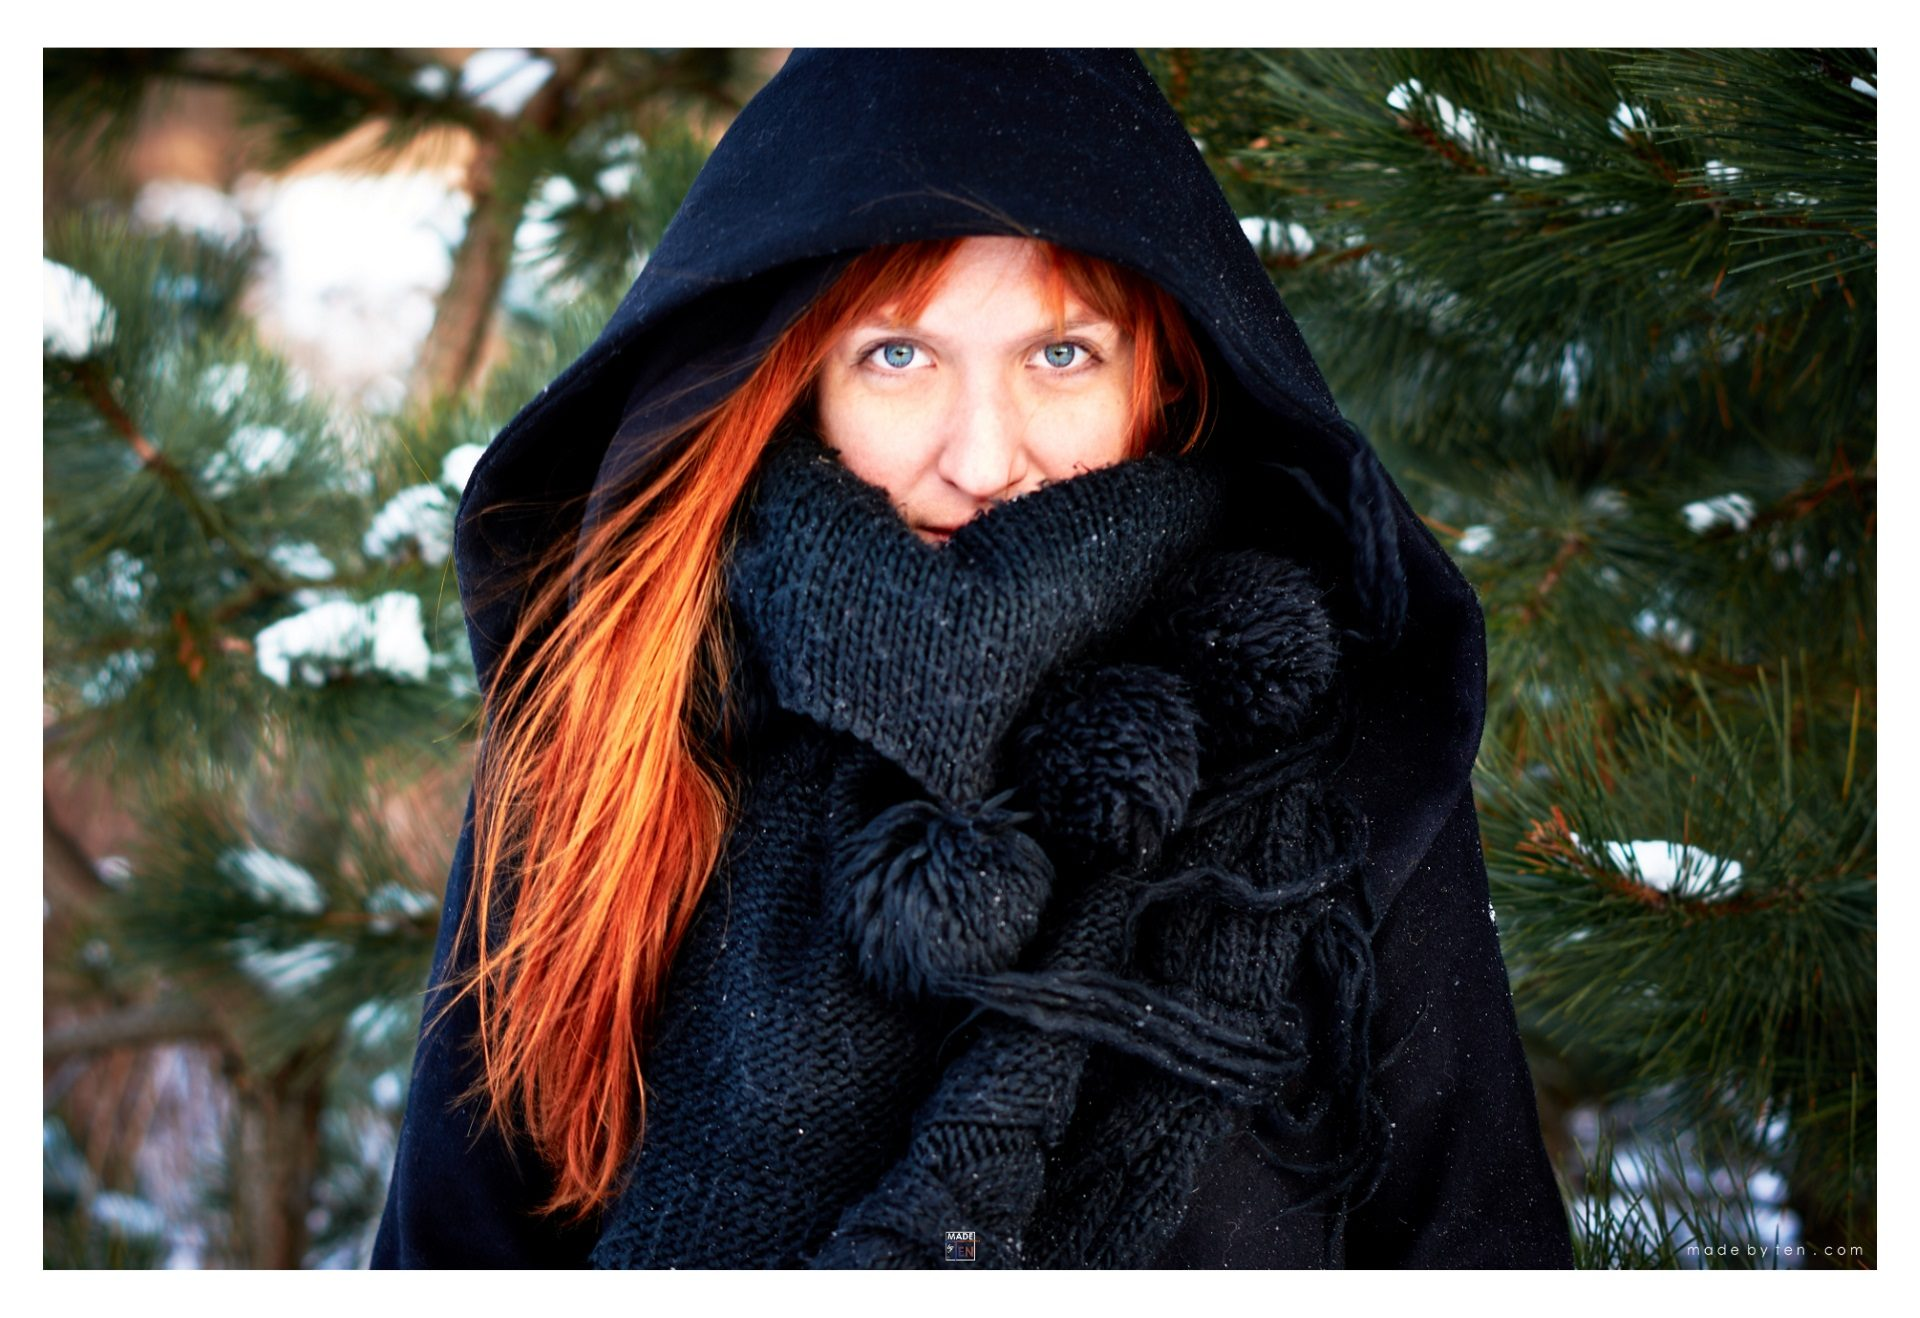 Woman Headshot Winter - GTA Women Lifestyle Photography